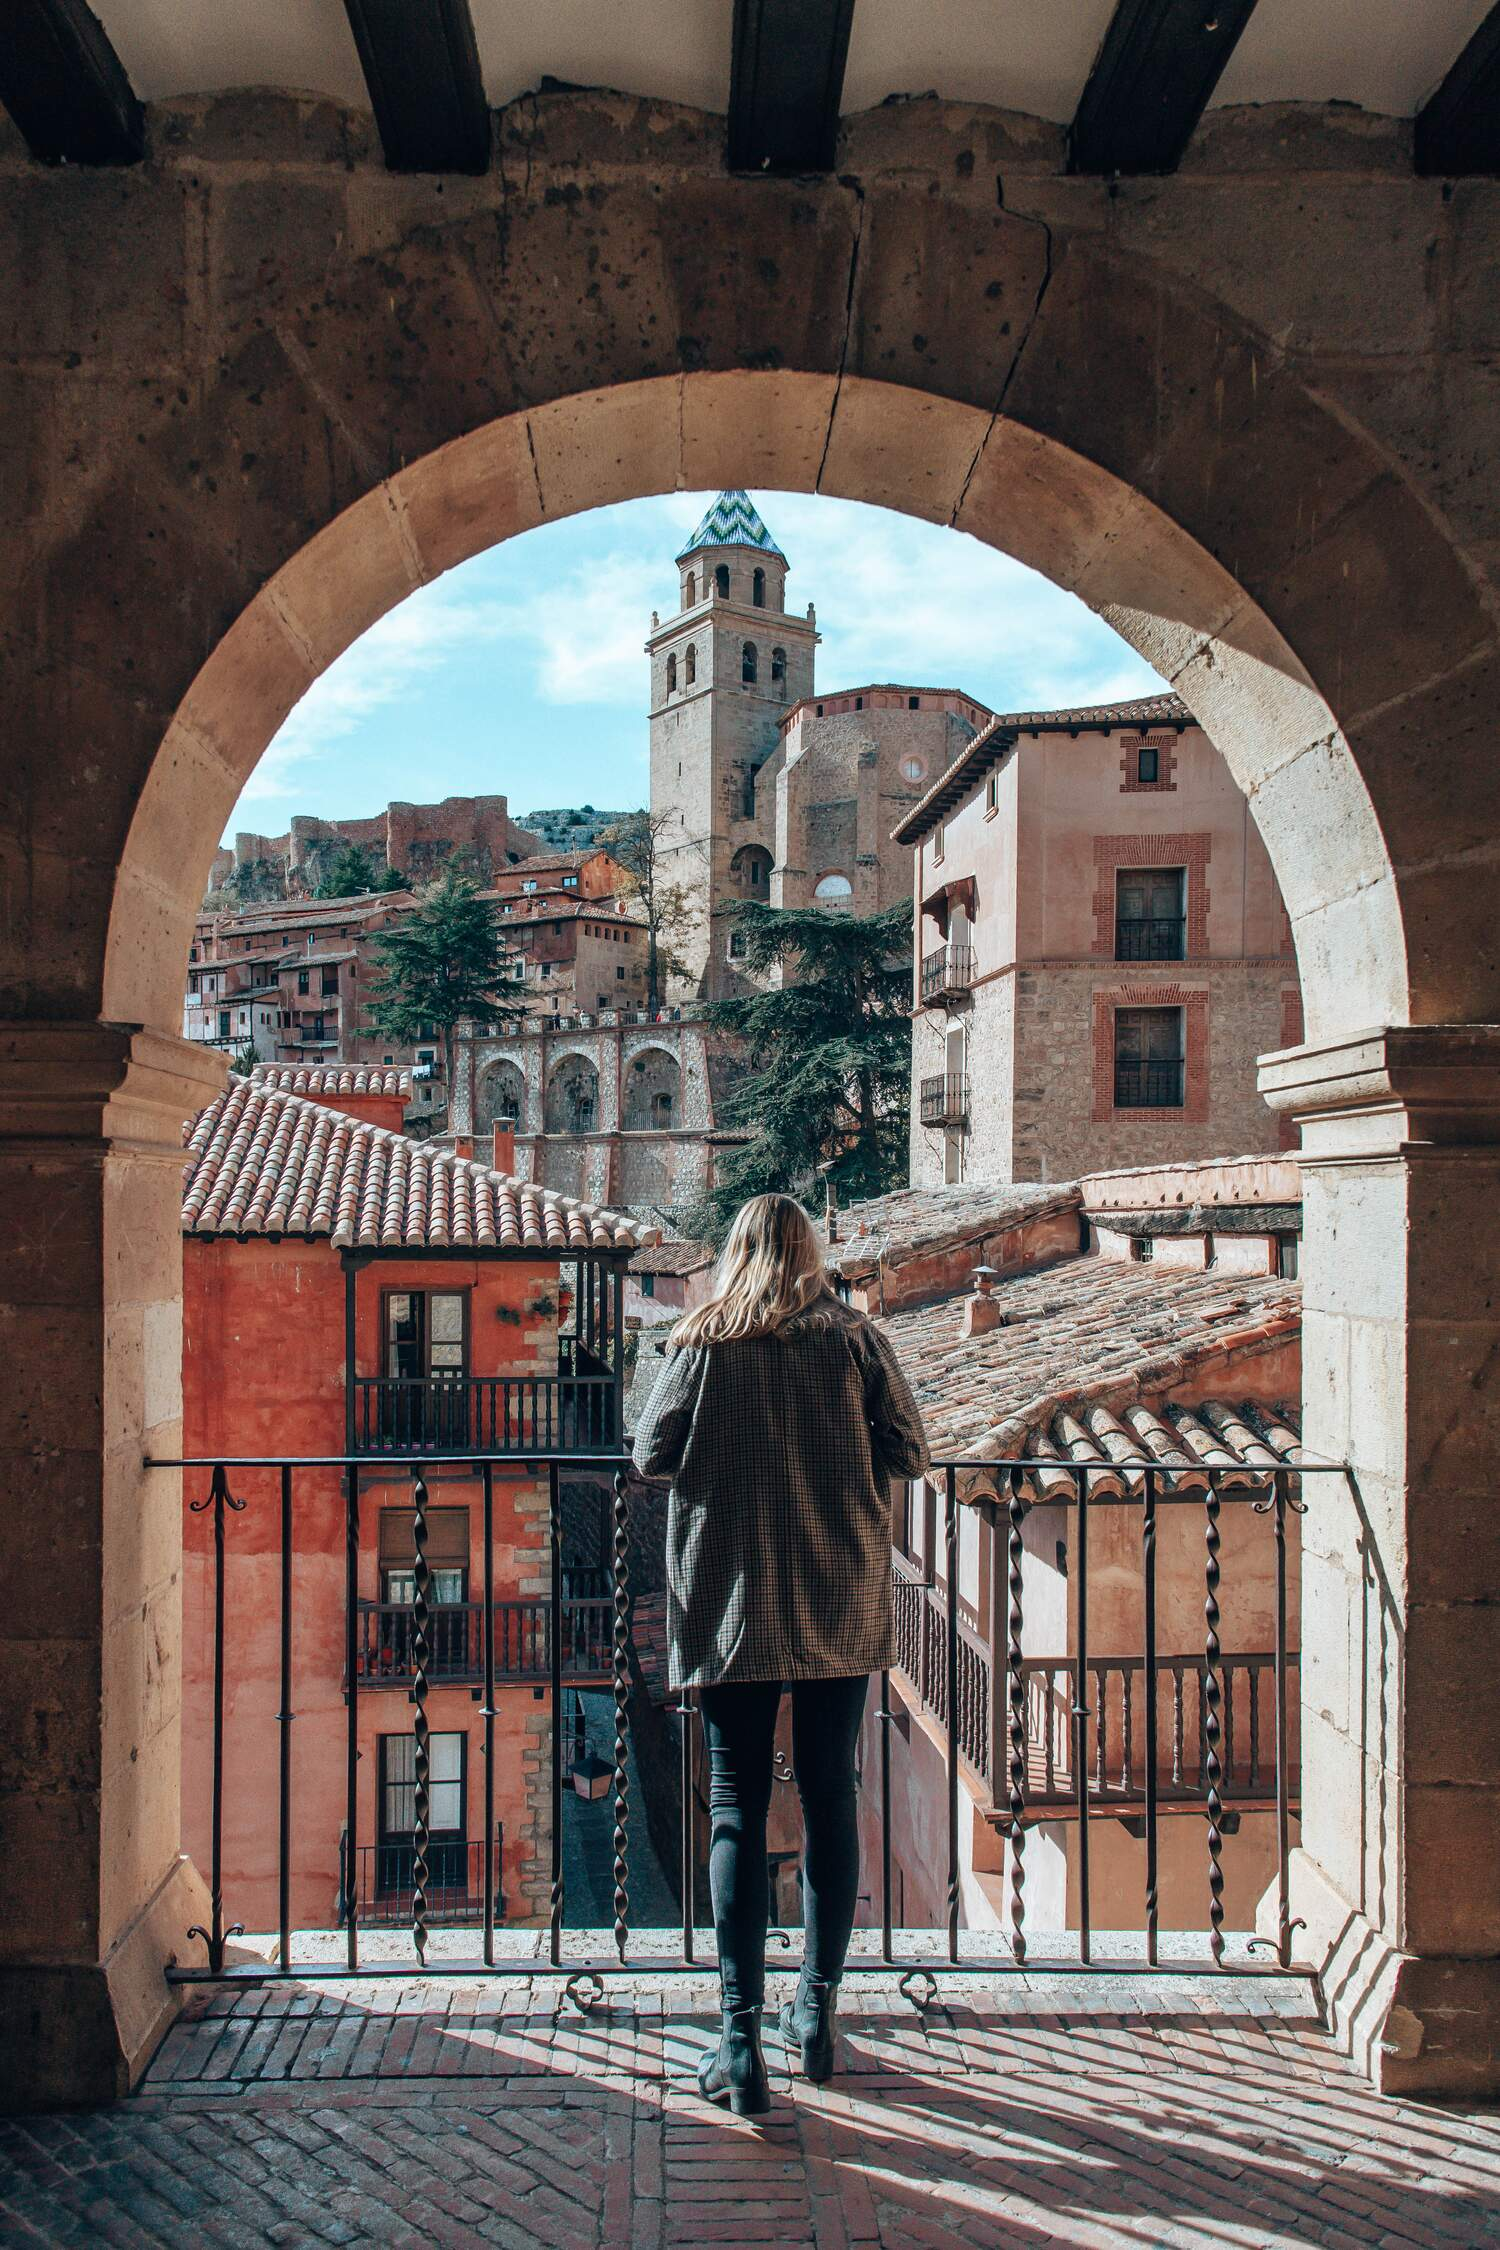 Looking up at the Cathedral of Albarraciin from the Plaza Major in Albarracin in Spain.